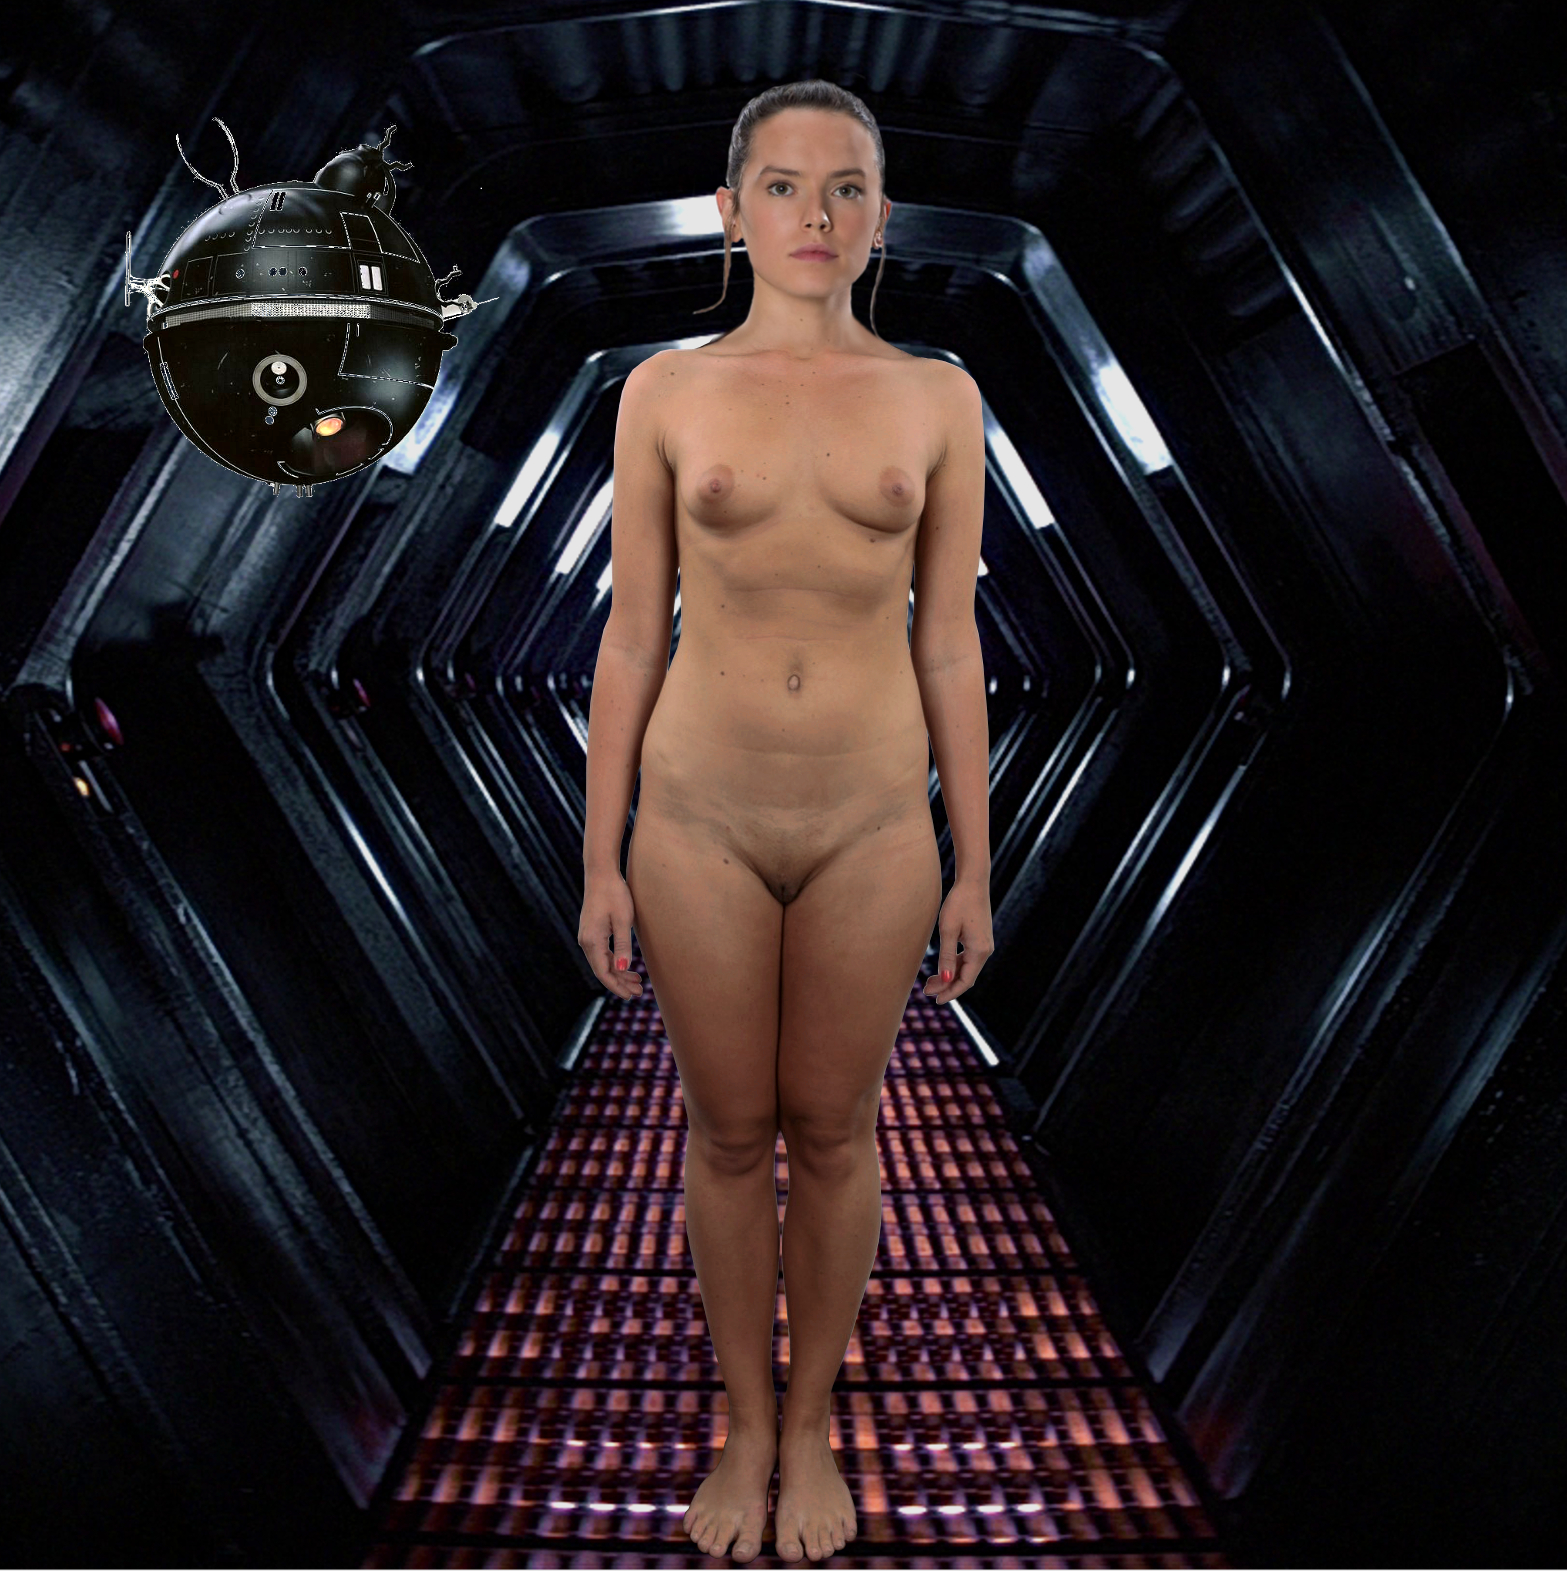 Nude star wars people xxx galleries